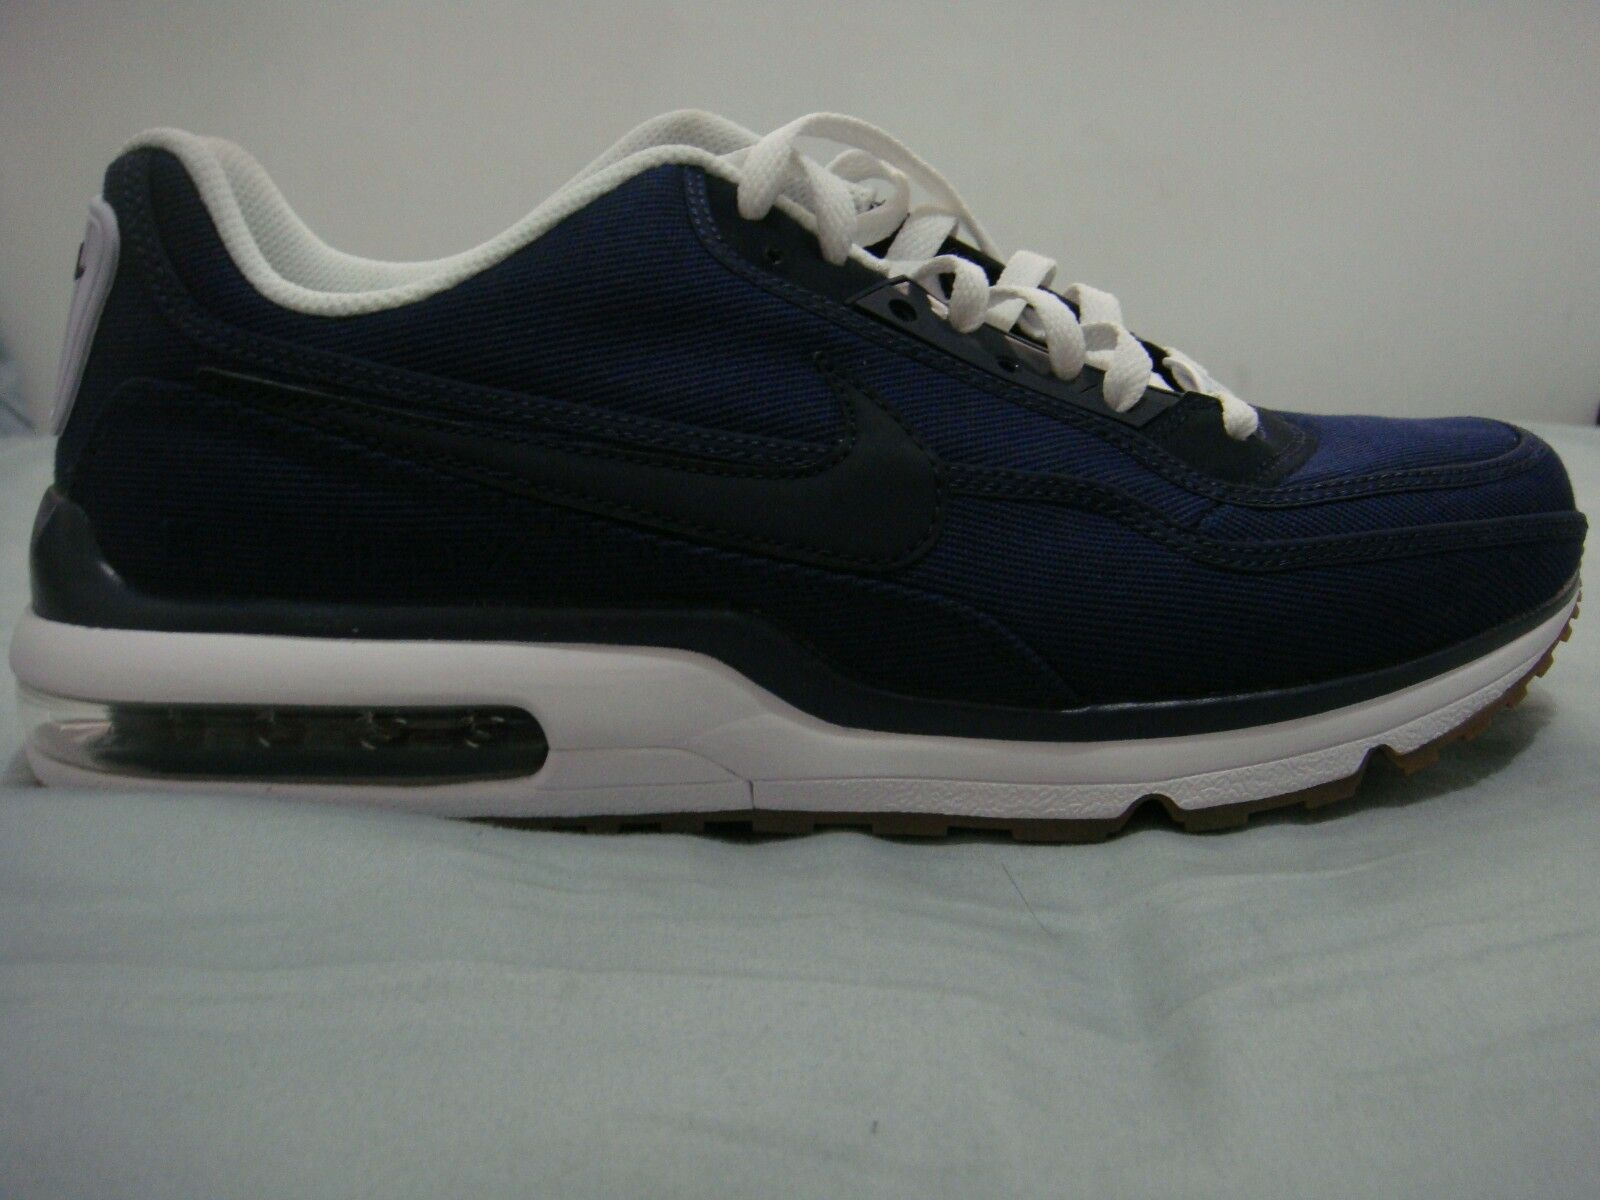 Nike air blu max ltd 3 uomini blu air 746379-412 txt dimensioni 11,5 d67c1d